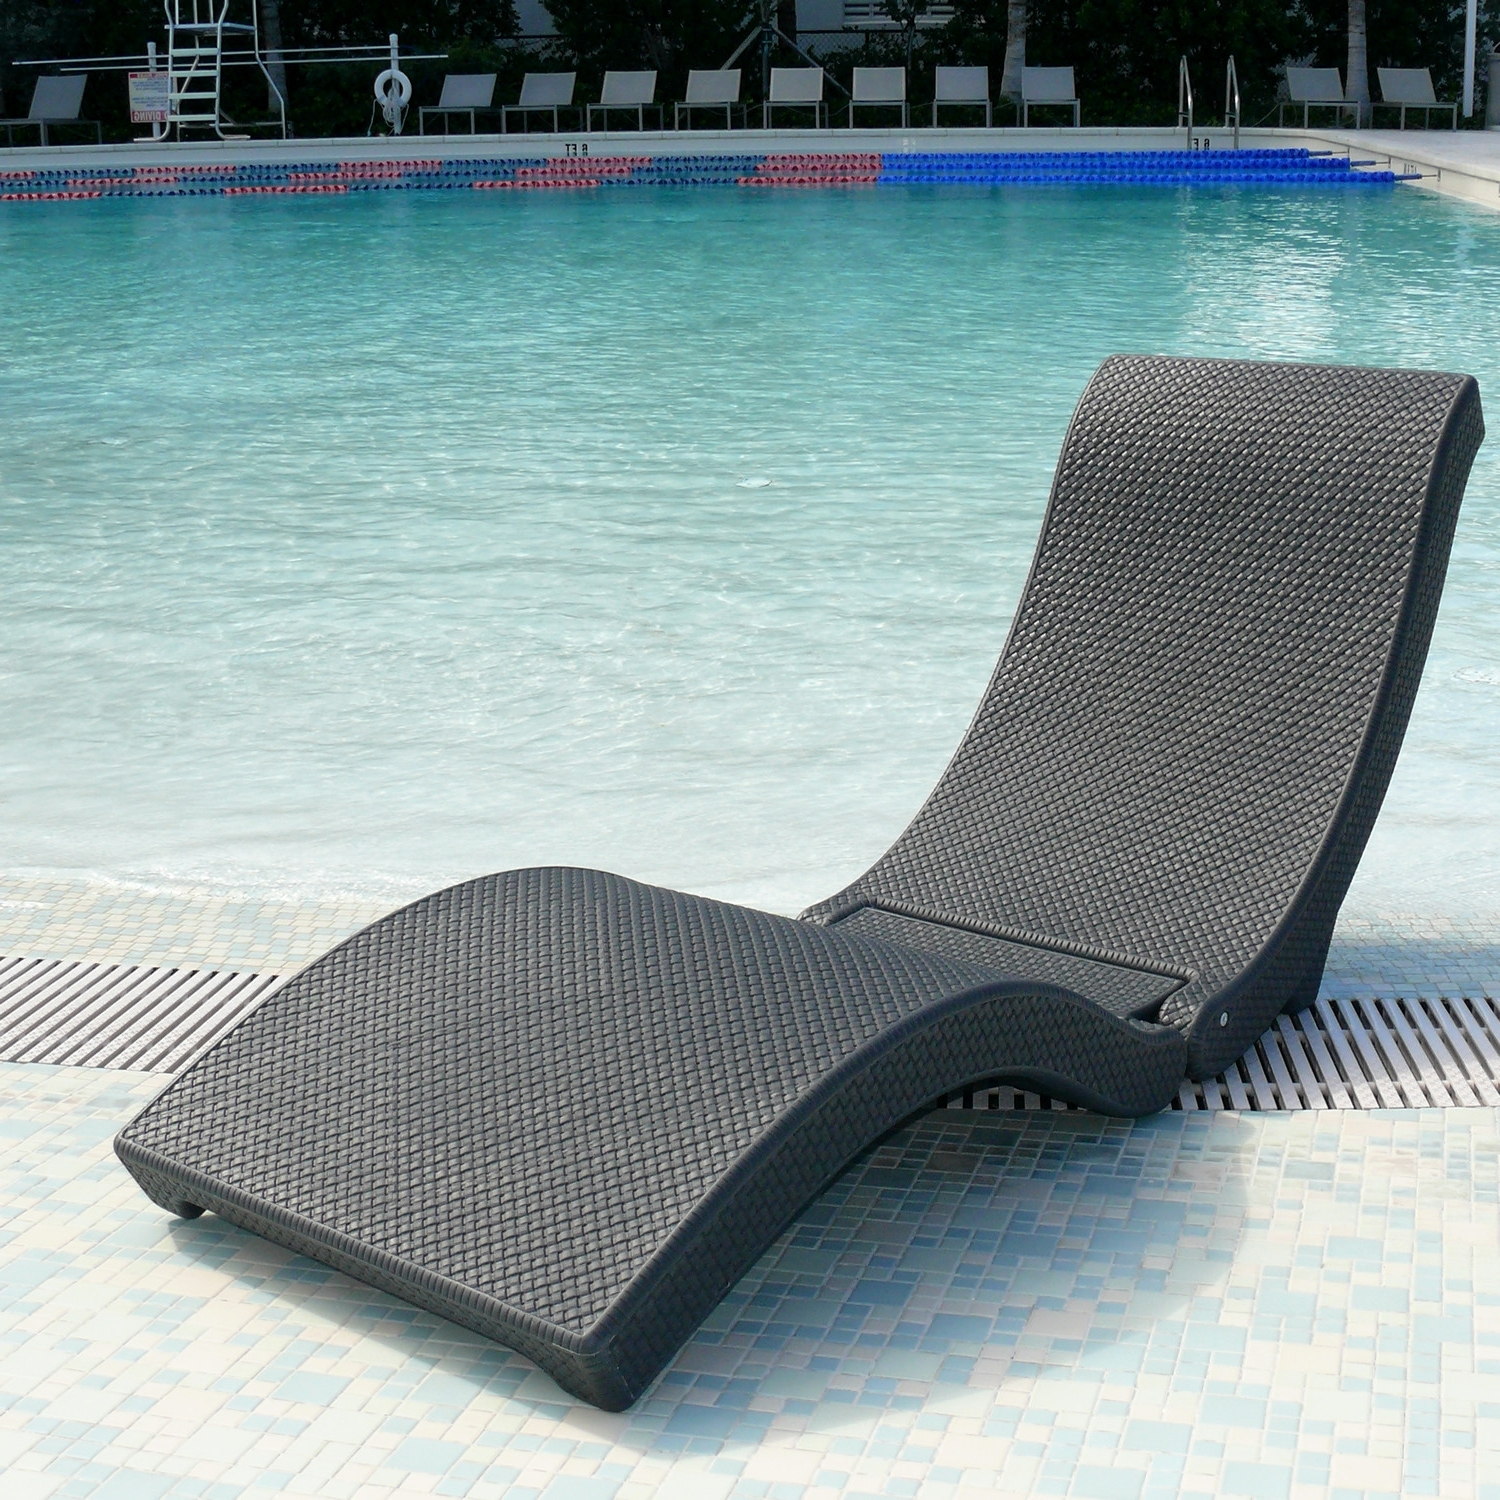 Plastic Chaise Lounges Within Best And Newest Plastic Lounge Chairs Pool (View 10 of 15)